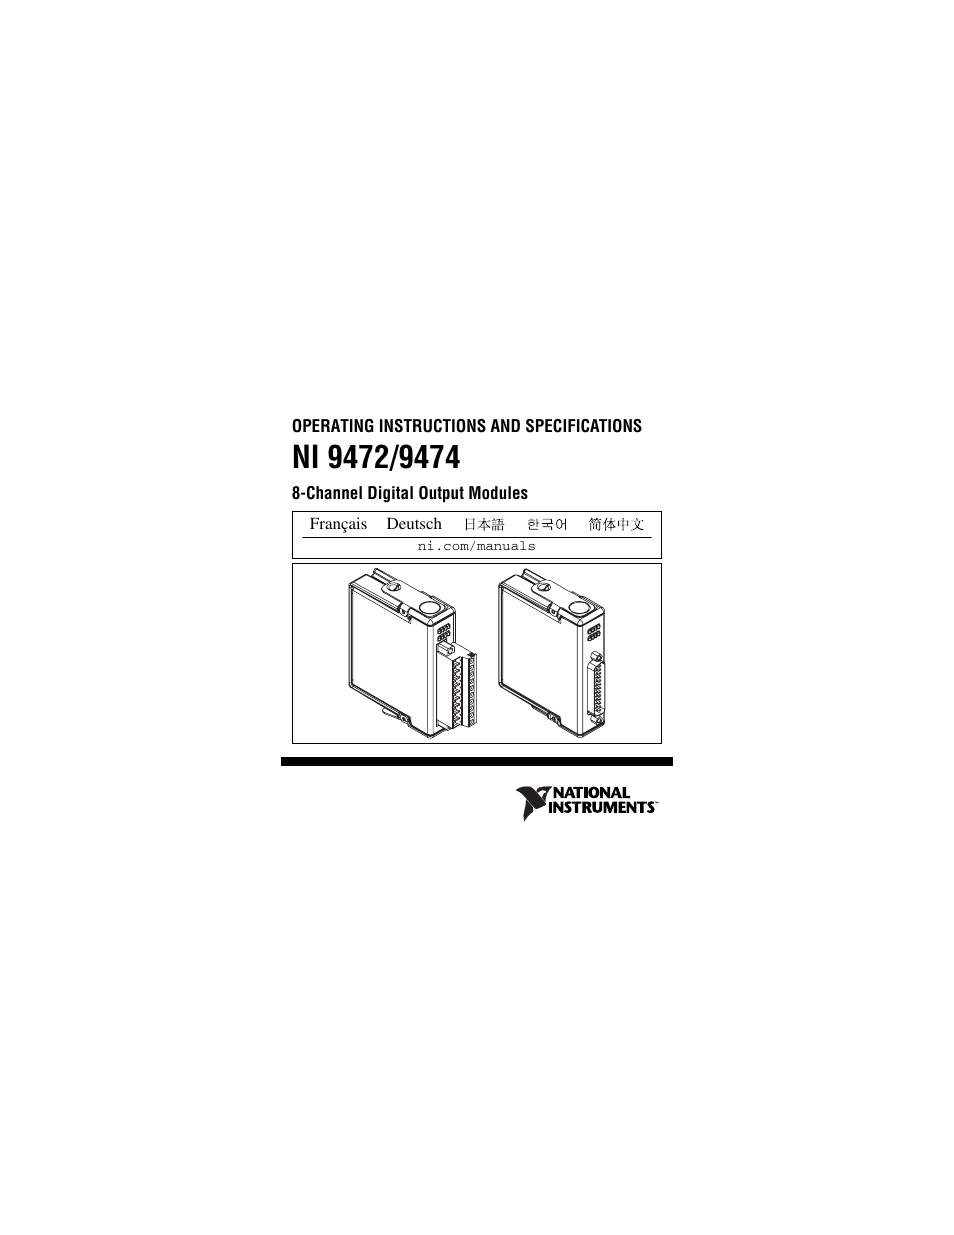 National-instruments ni 9474 download user guide for free 423c3.